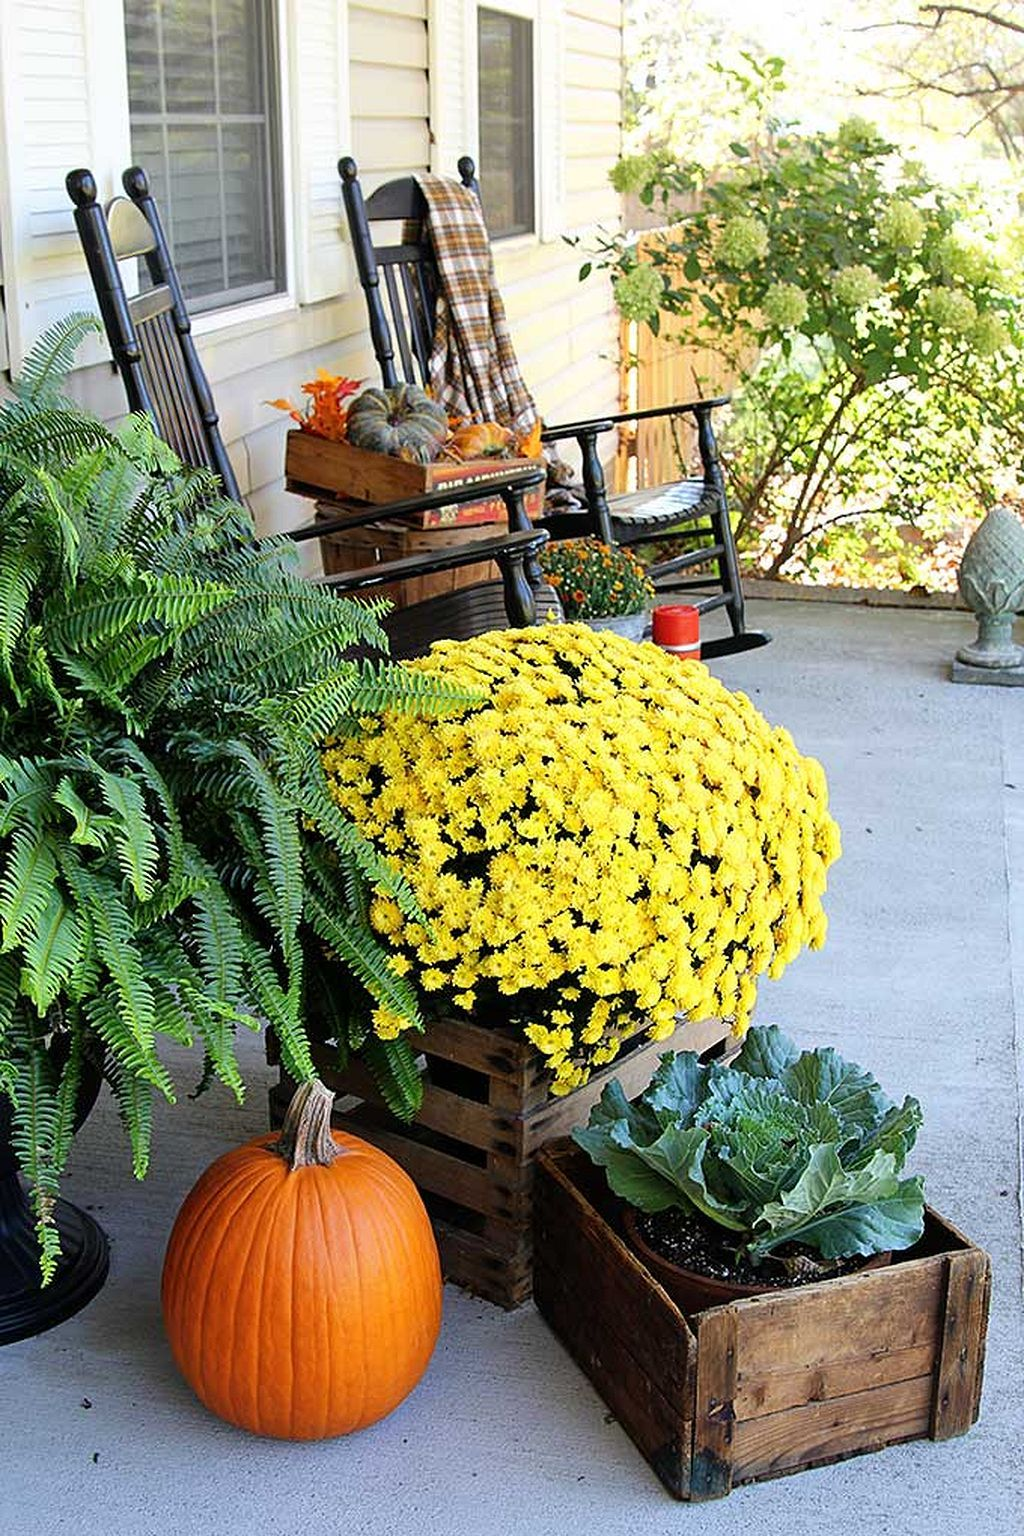 Festive front porch fall decor mixing traditional